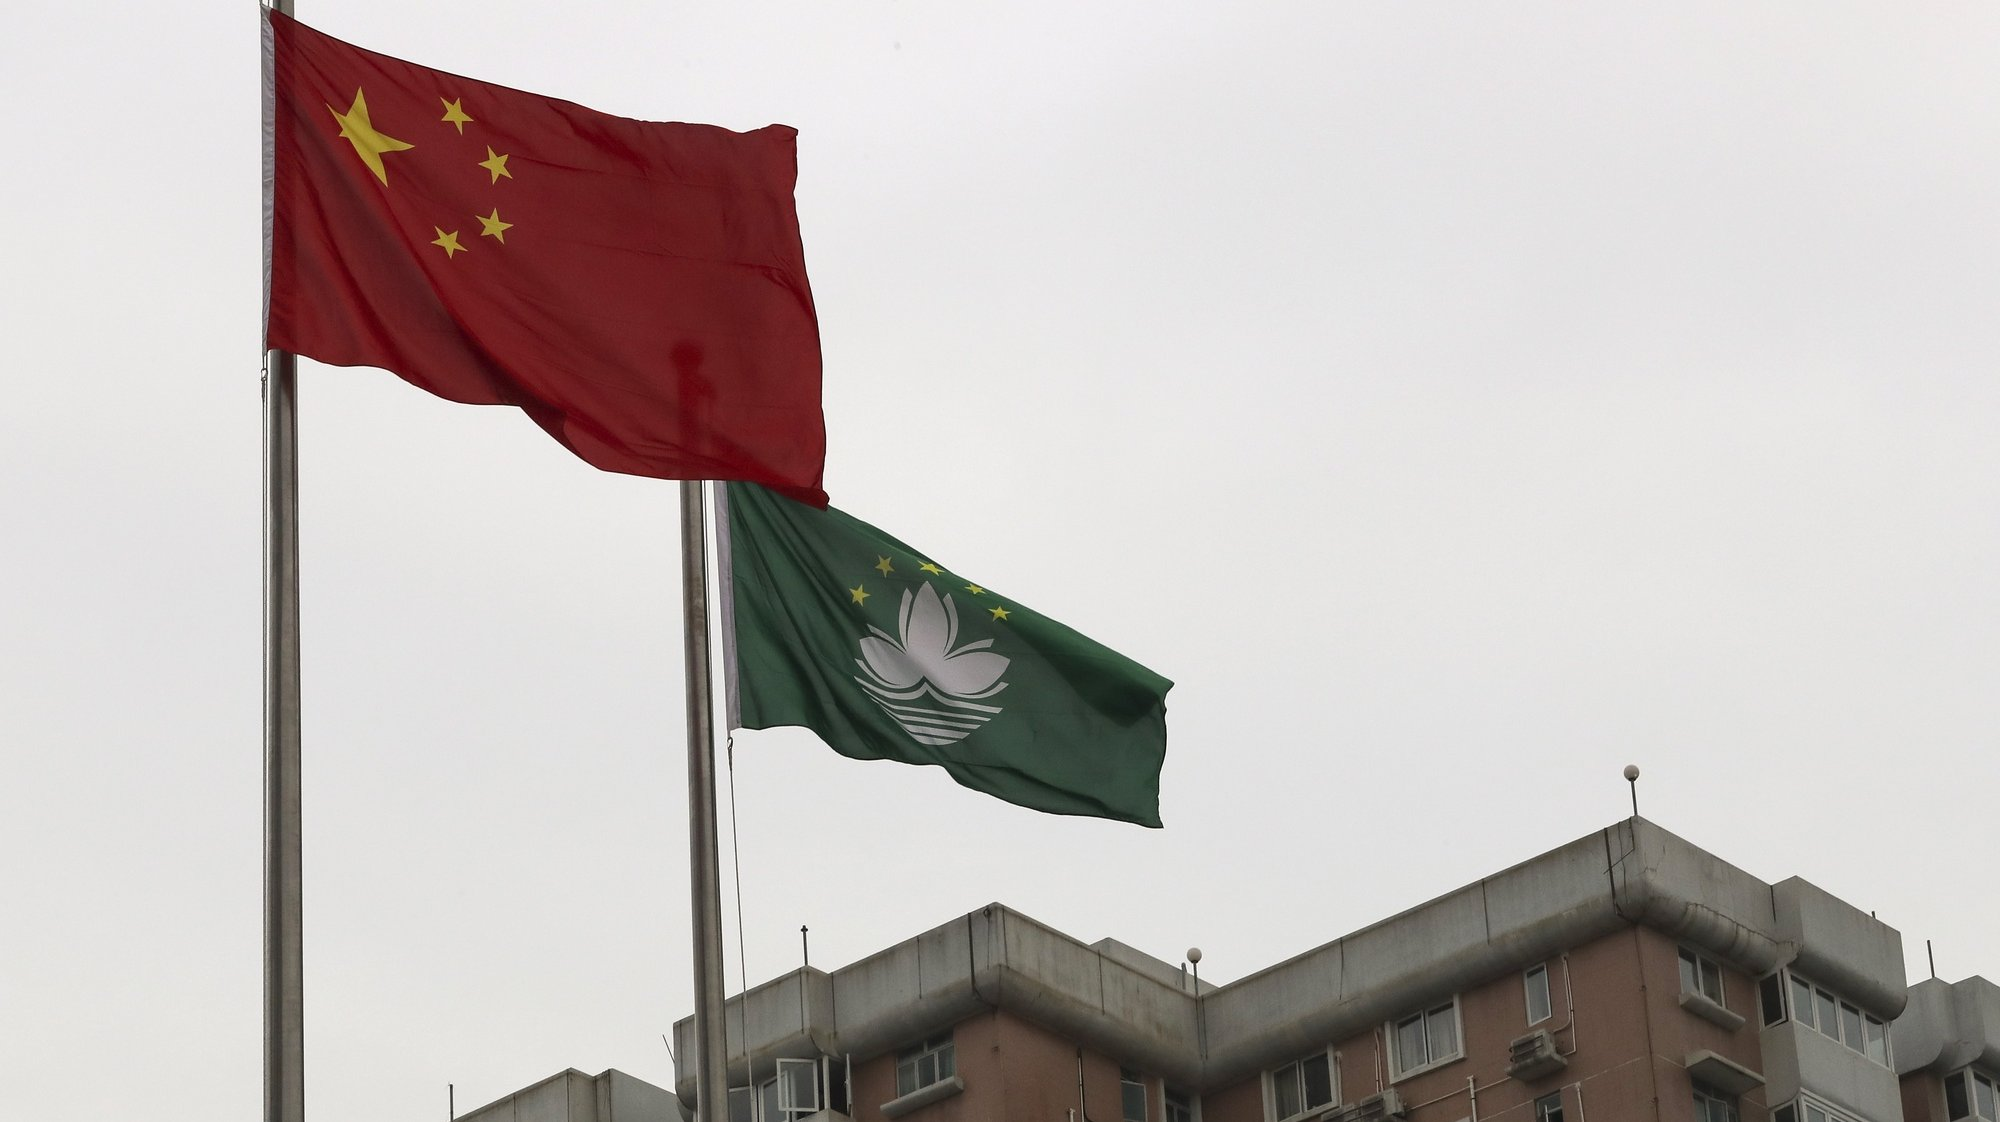 epa08082673 Chinese and Macao's flags wave during the flag-raising ceremony for Macao Special Administrative Region's (SAR) 20th anniversary at Lotus Flower Square in Macao, China, 20 December 2019. Macao had been a Portuguese colony until 1999 when it returned to Chinese rule under the 'one country, two systems' principle.  EPA/JOAO RELVAS